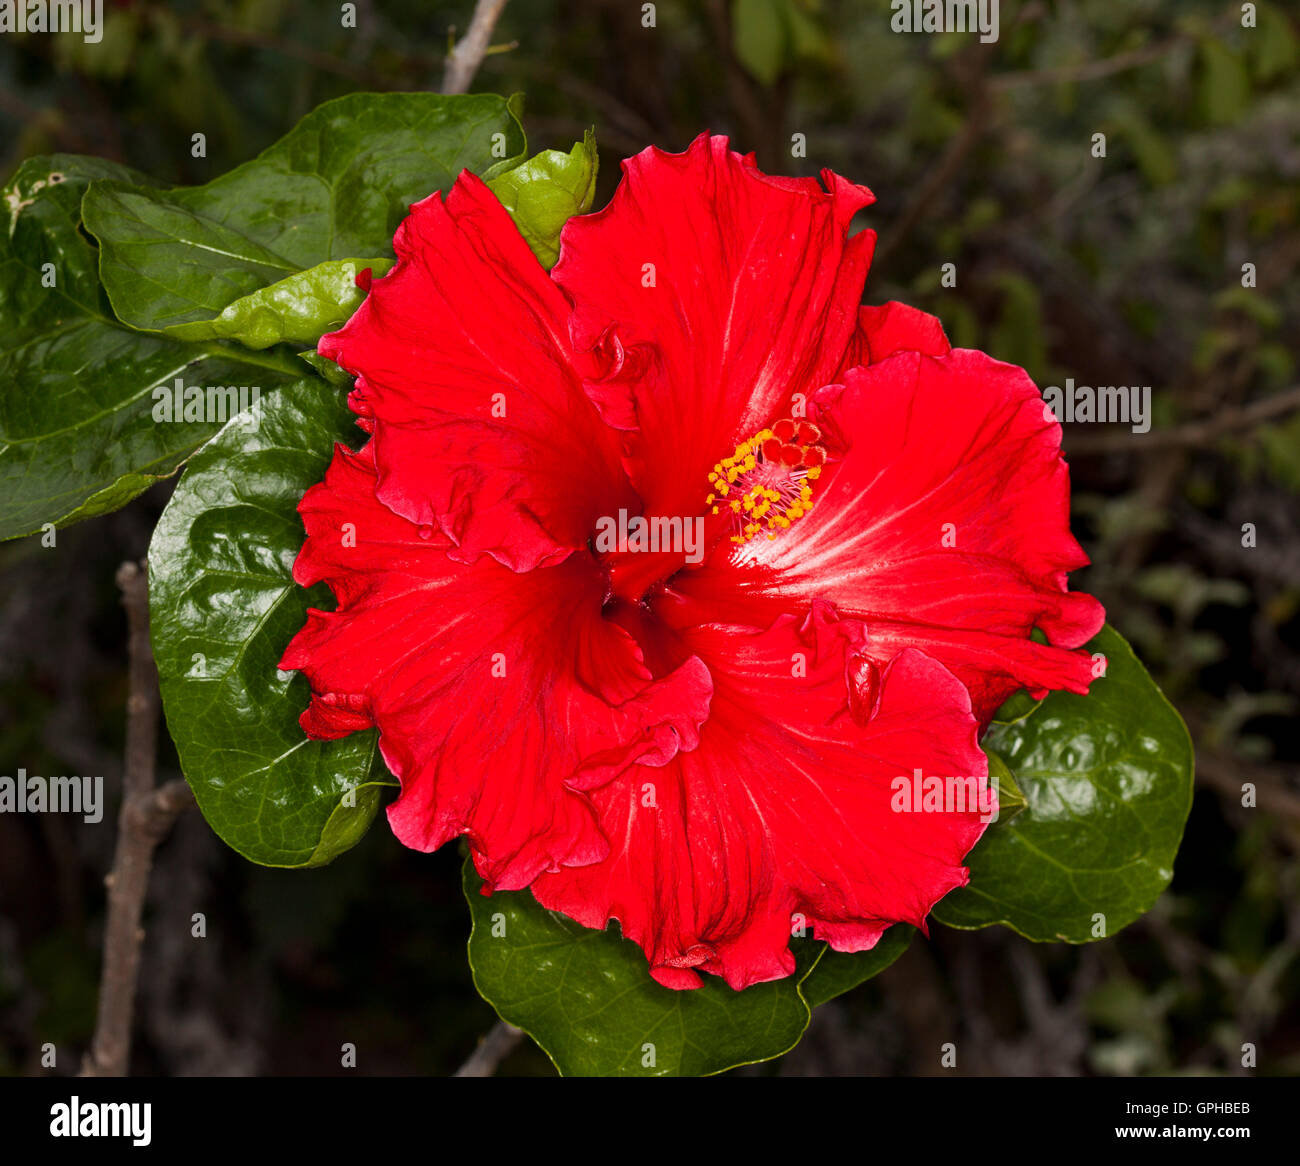 Spectacular Vivid Red Flower With Frilly Petals Of Hibiscus Rosa